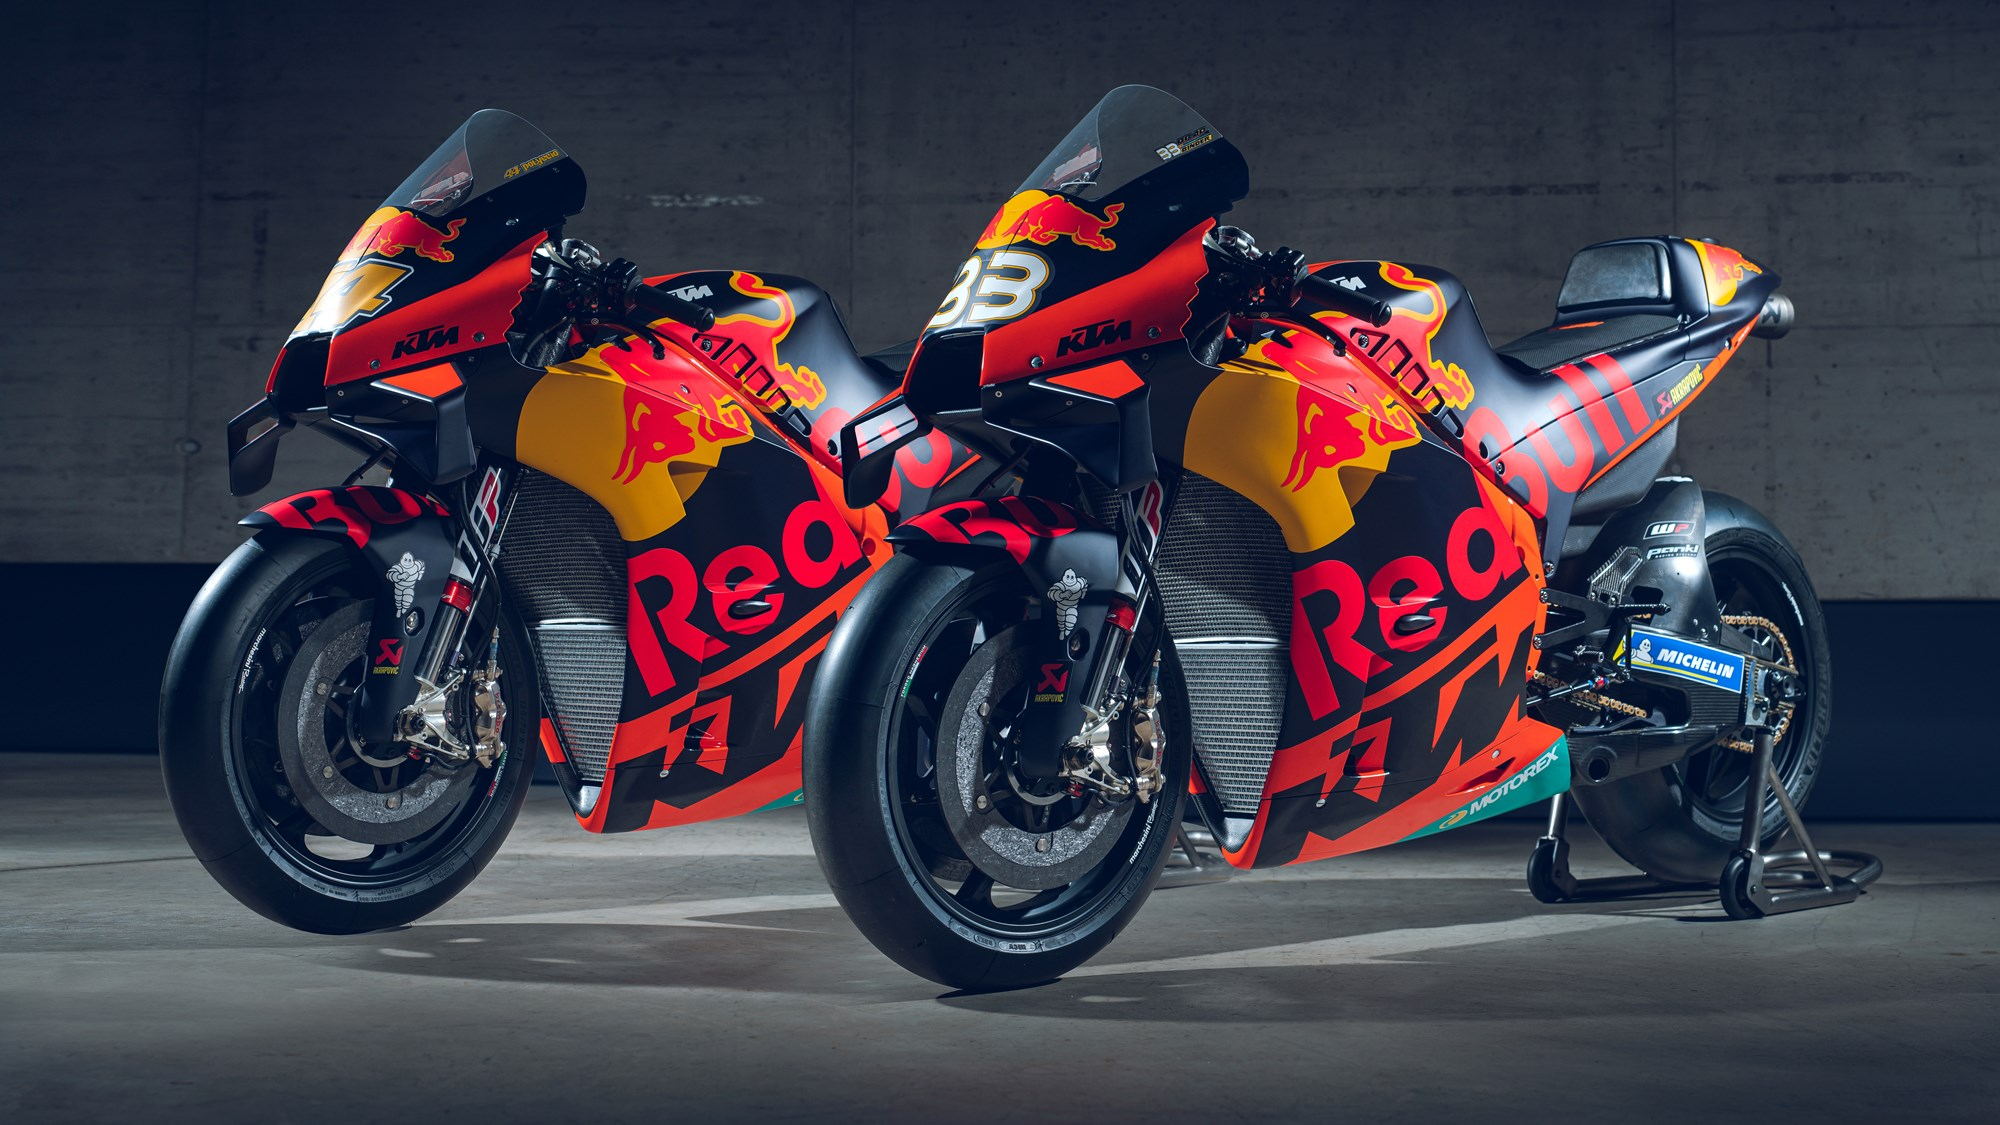 2020 KTM RC16 MotoGP bike specifications